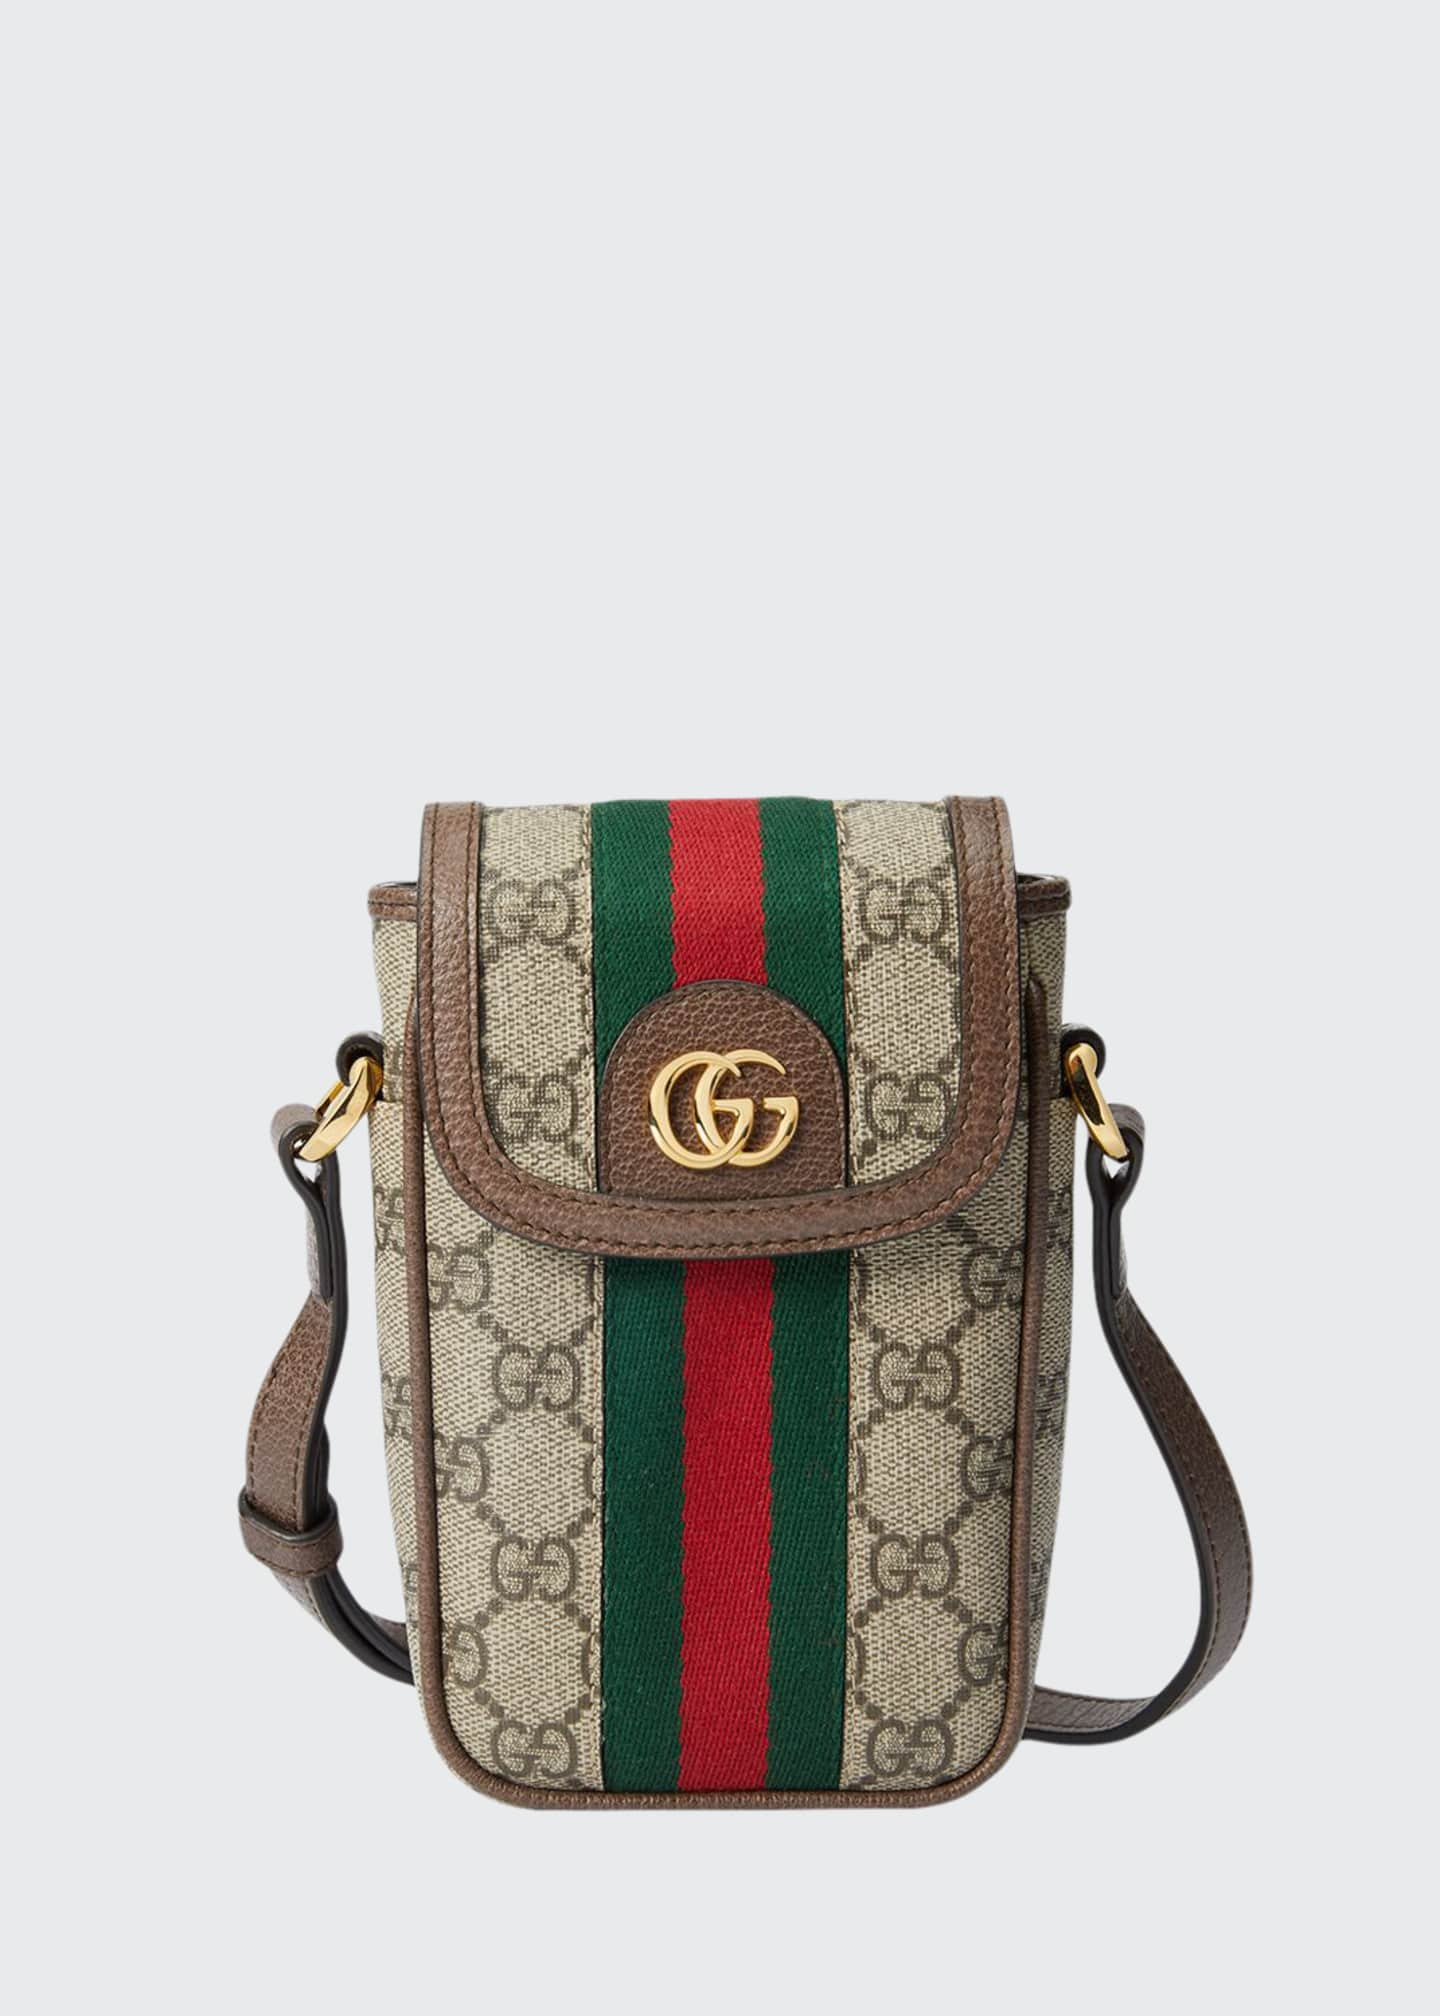 Gucci Ophidia GG Supreme Phone Case Crossbody Bag